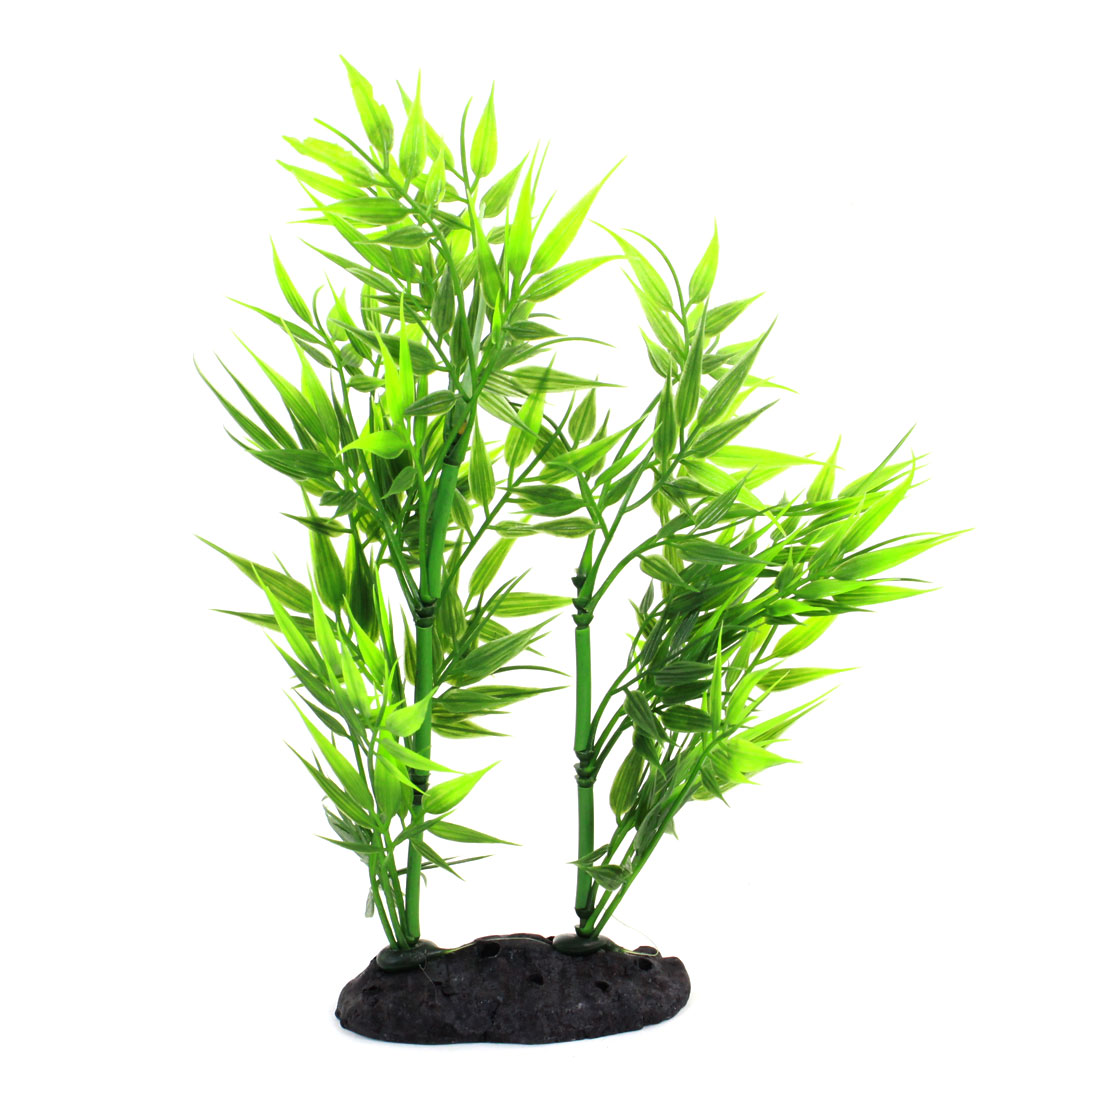 "Aquarium Fish Tank Landscaping Artificial Emulational Underwater Water Plant Bamboo Decor Green 8.3"" Height"